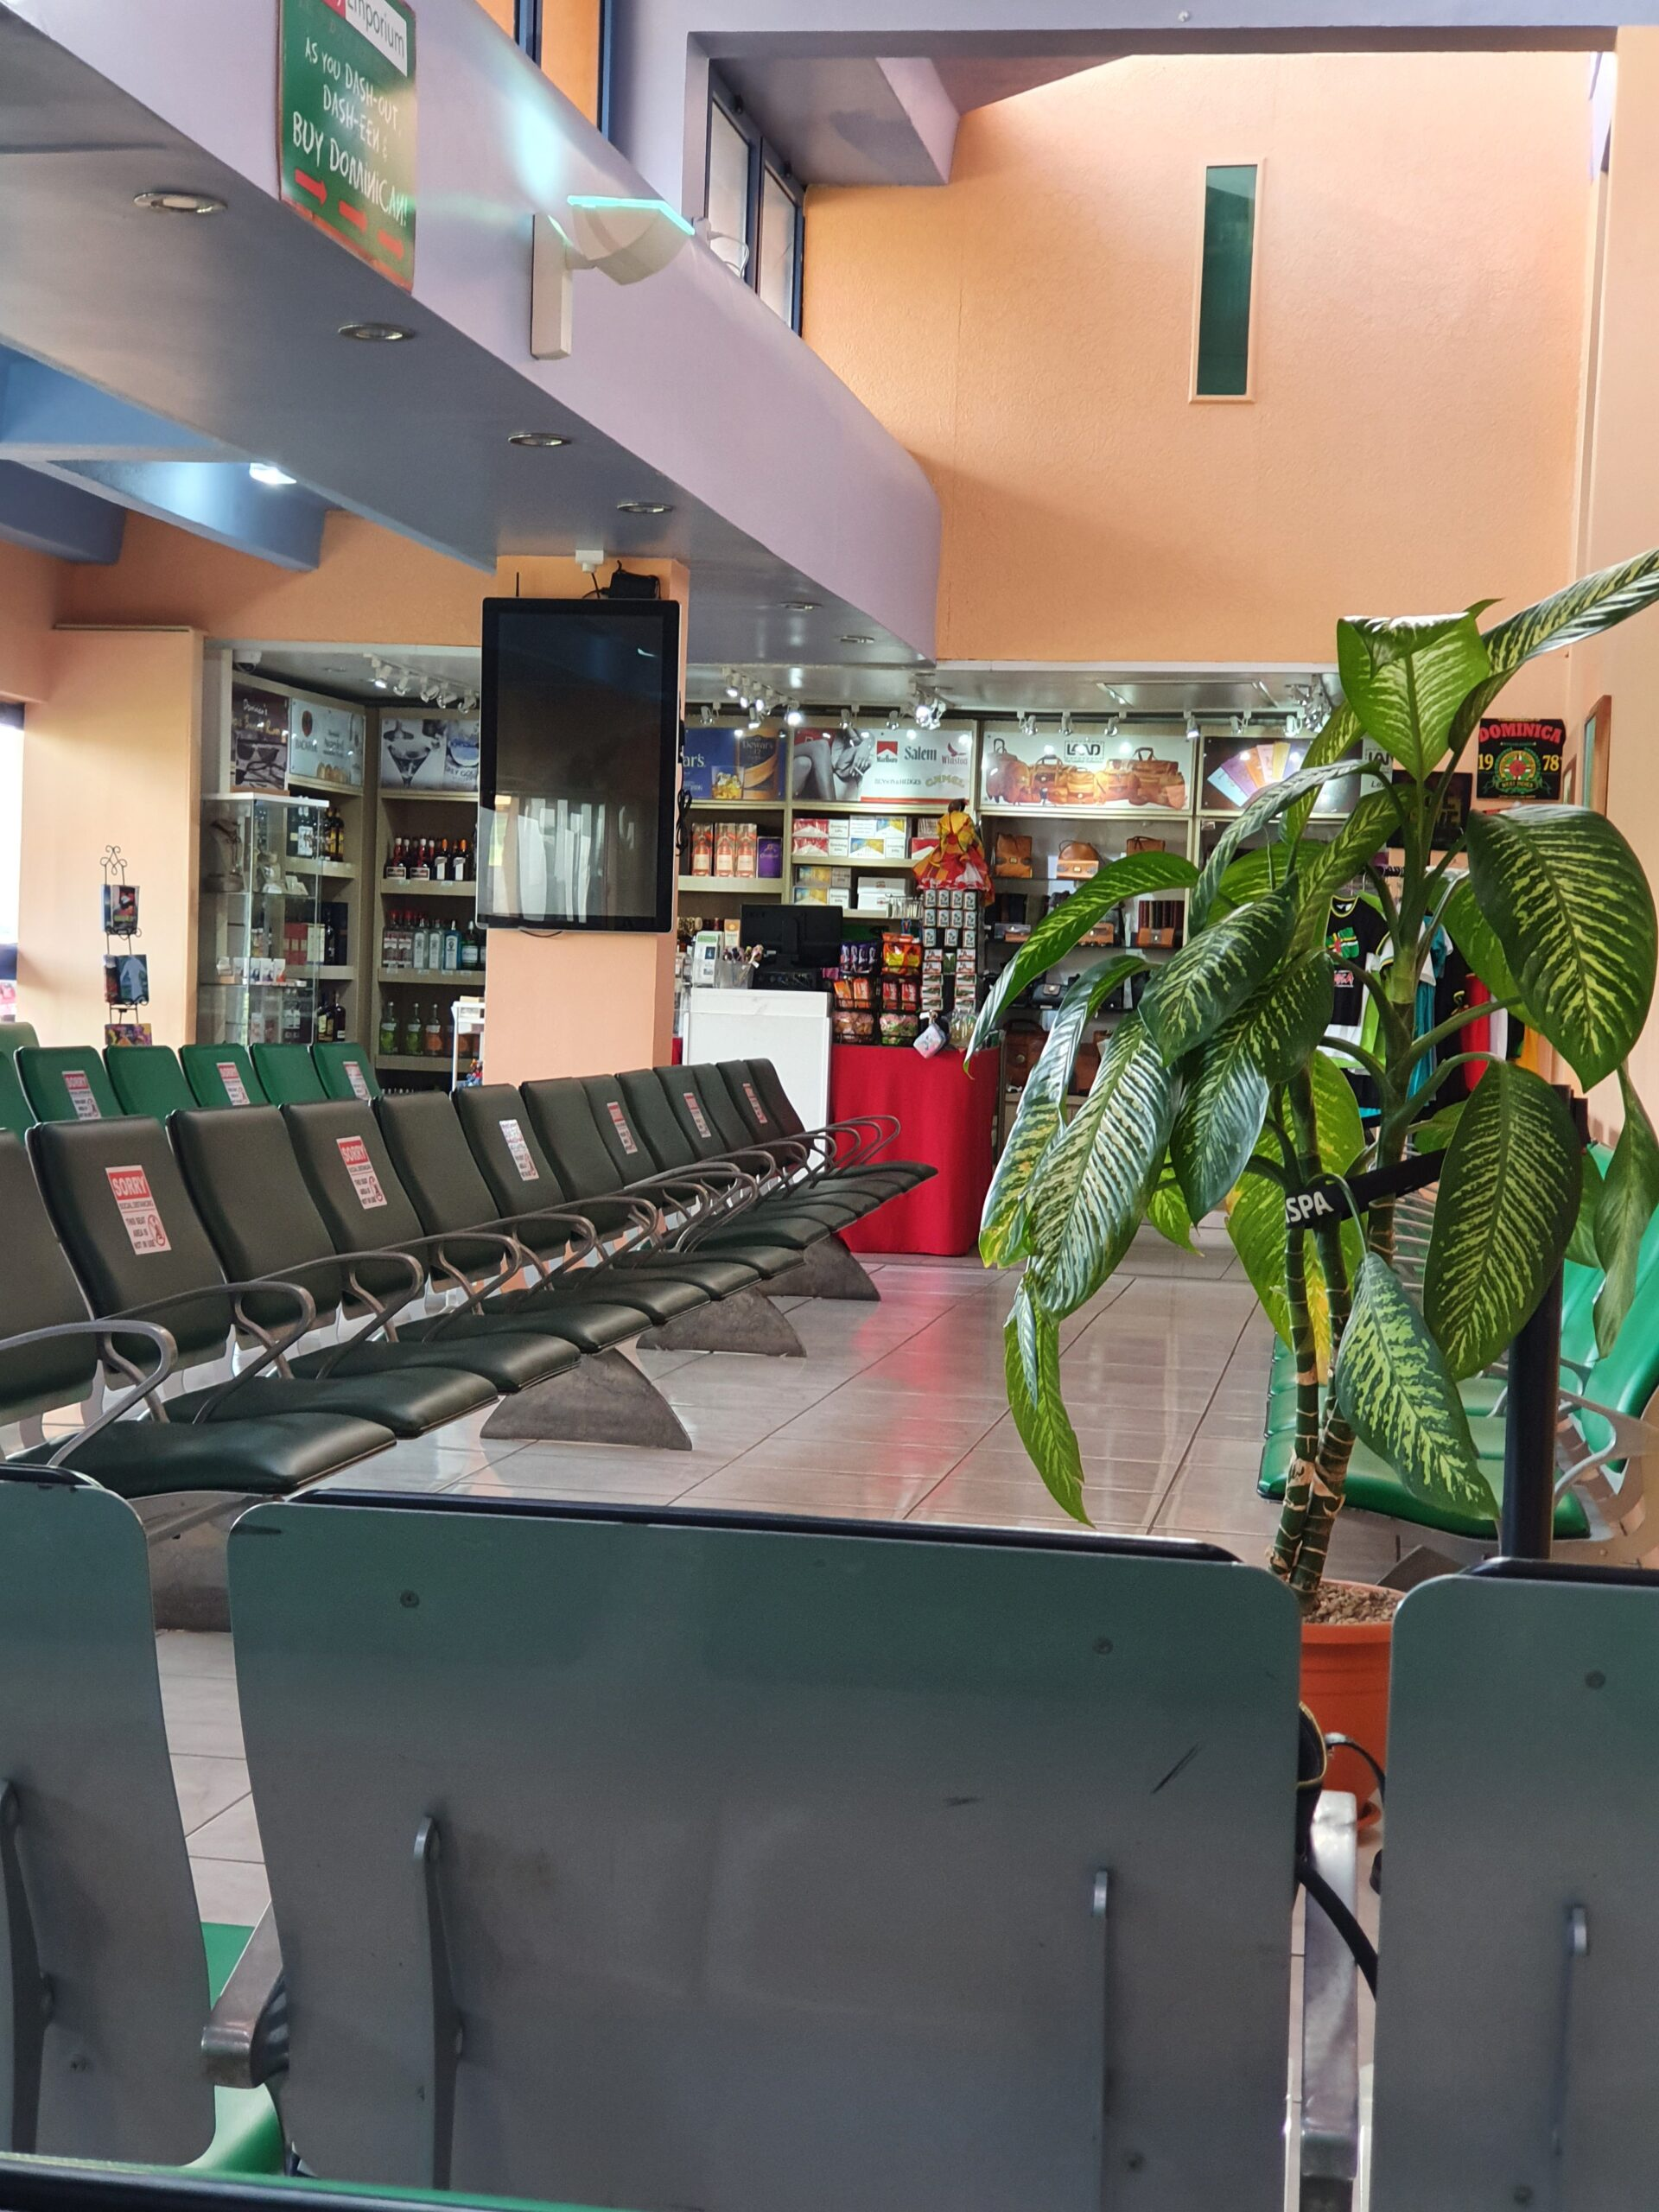 Departure lounge at Dominica airport.